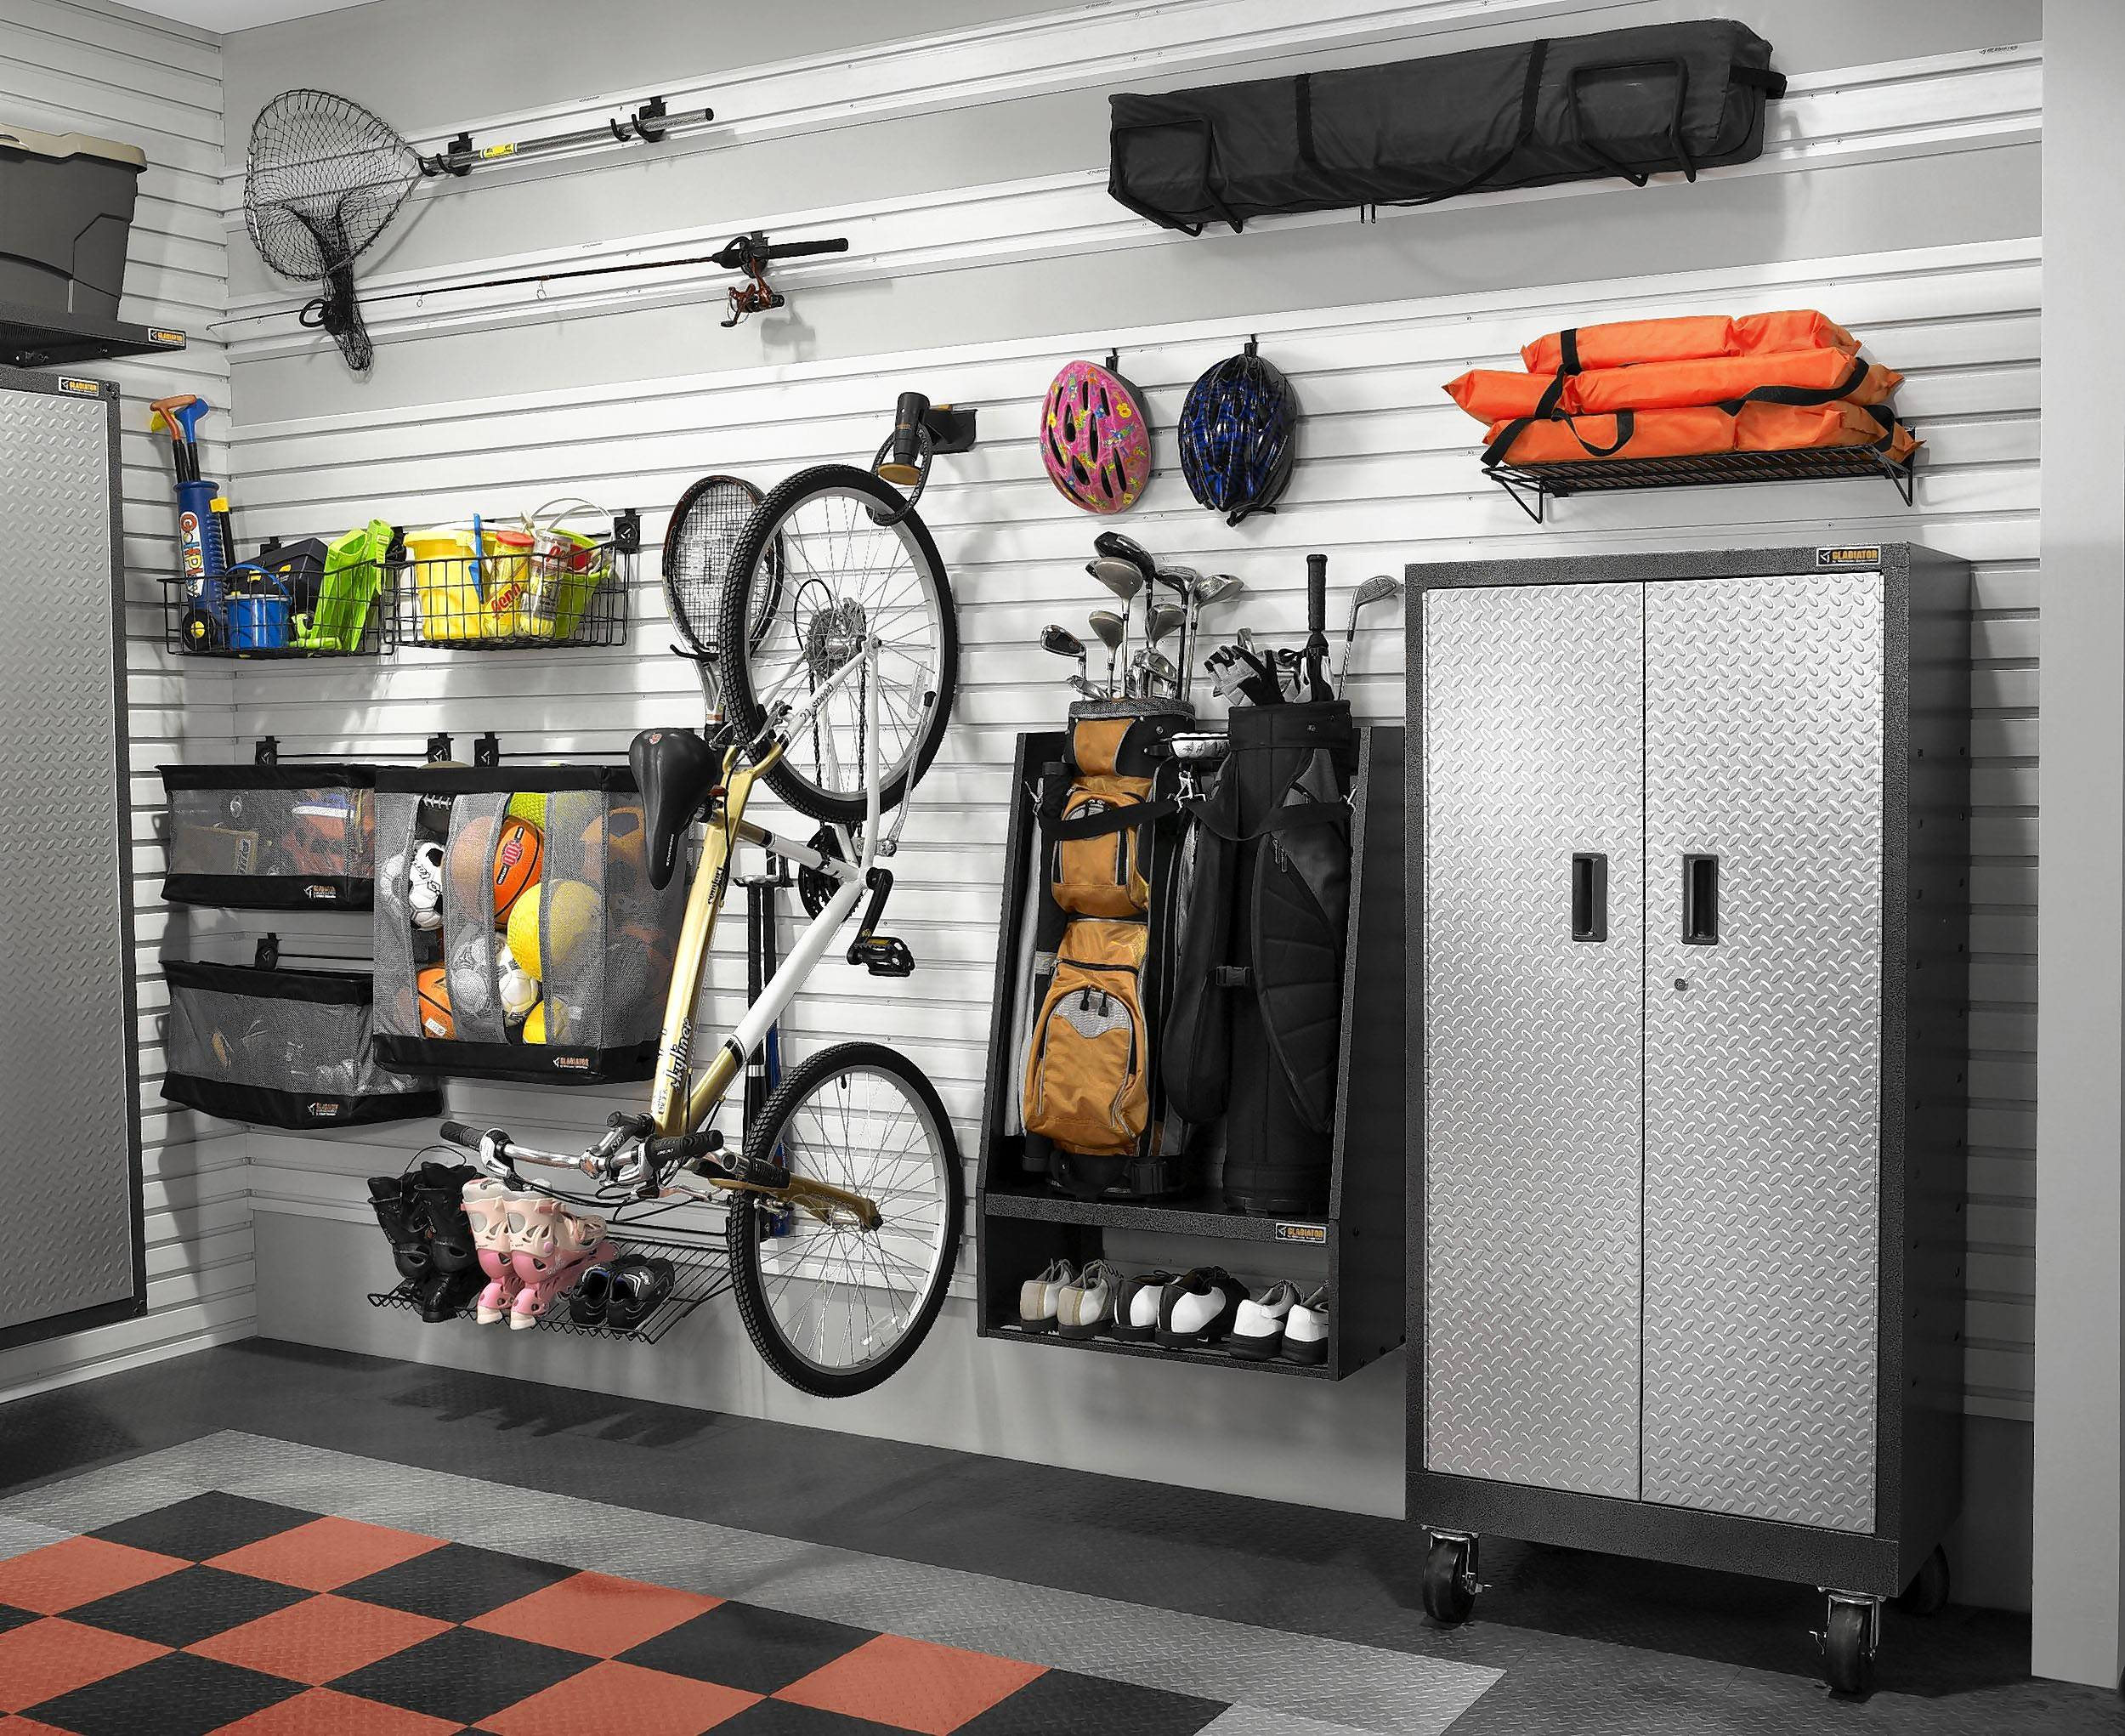 A small industry is developing among specialty contractors that organize and beautify garages.